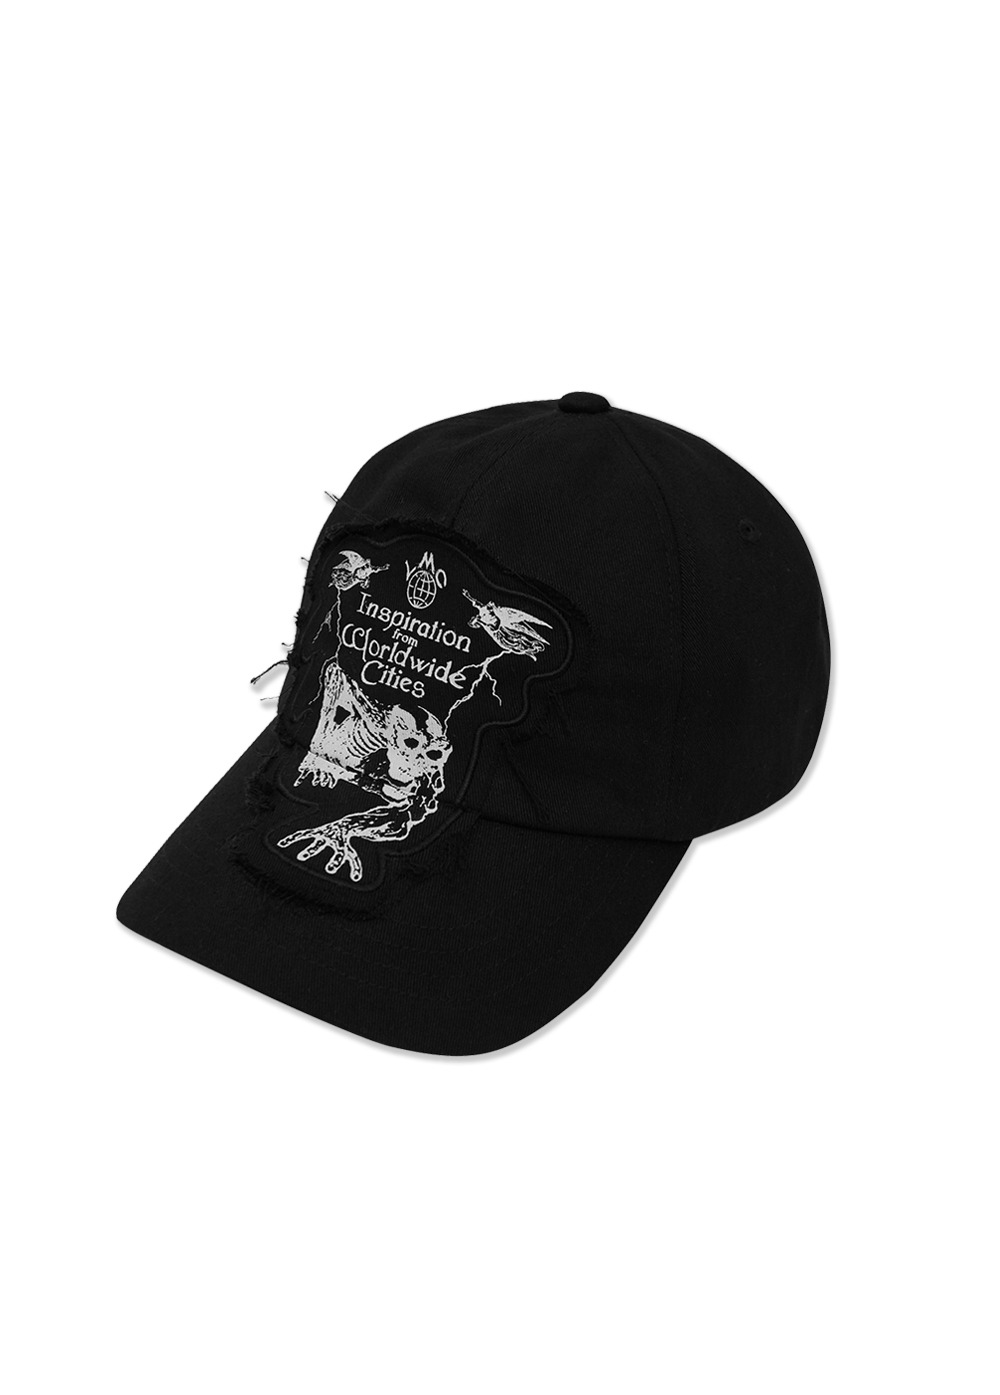 LMC RAW EDGE DEATH 5 PANEL CAP black